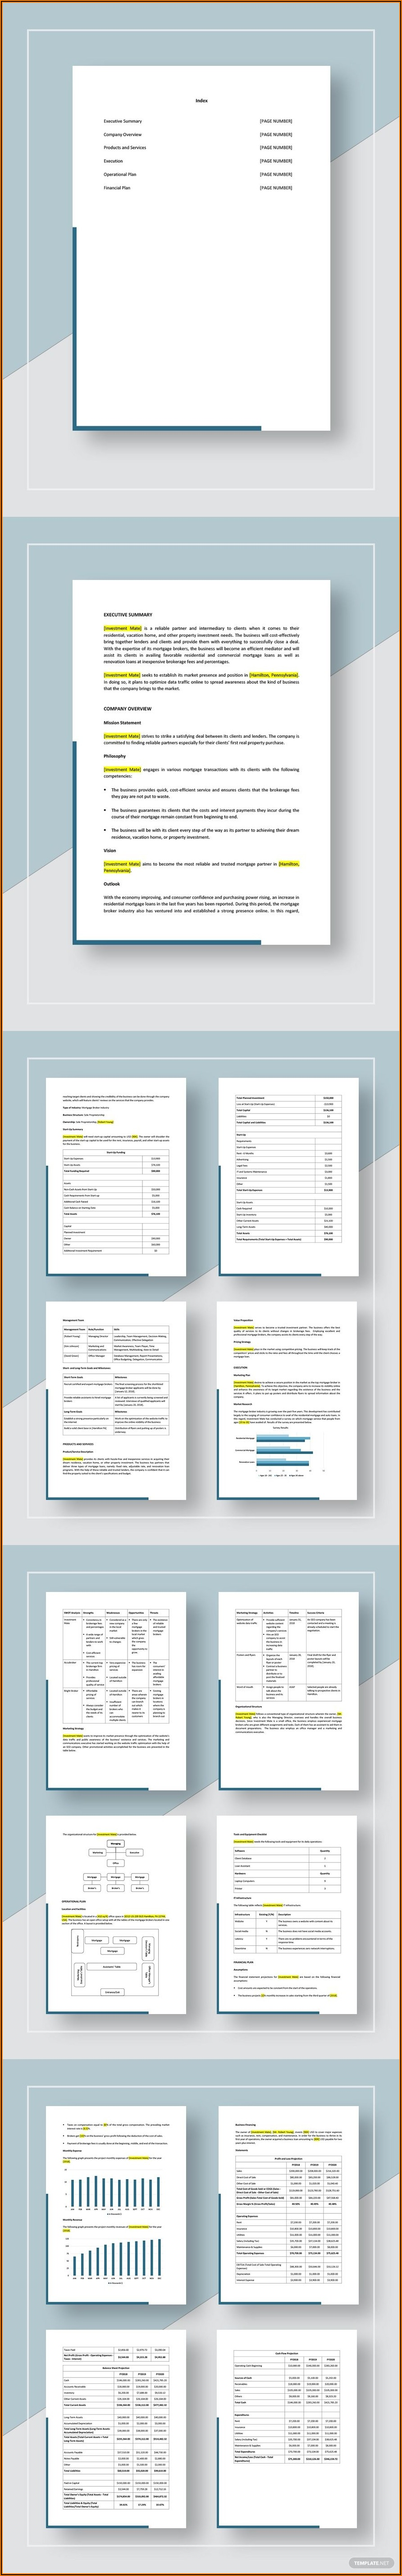 Mortgage Broker Business Plan Template Free